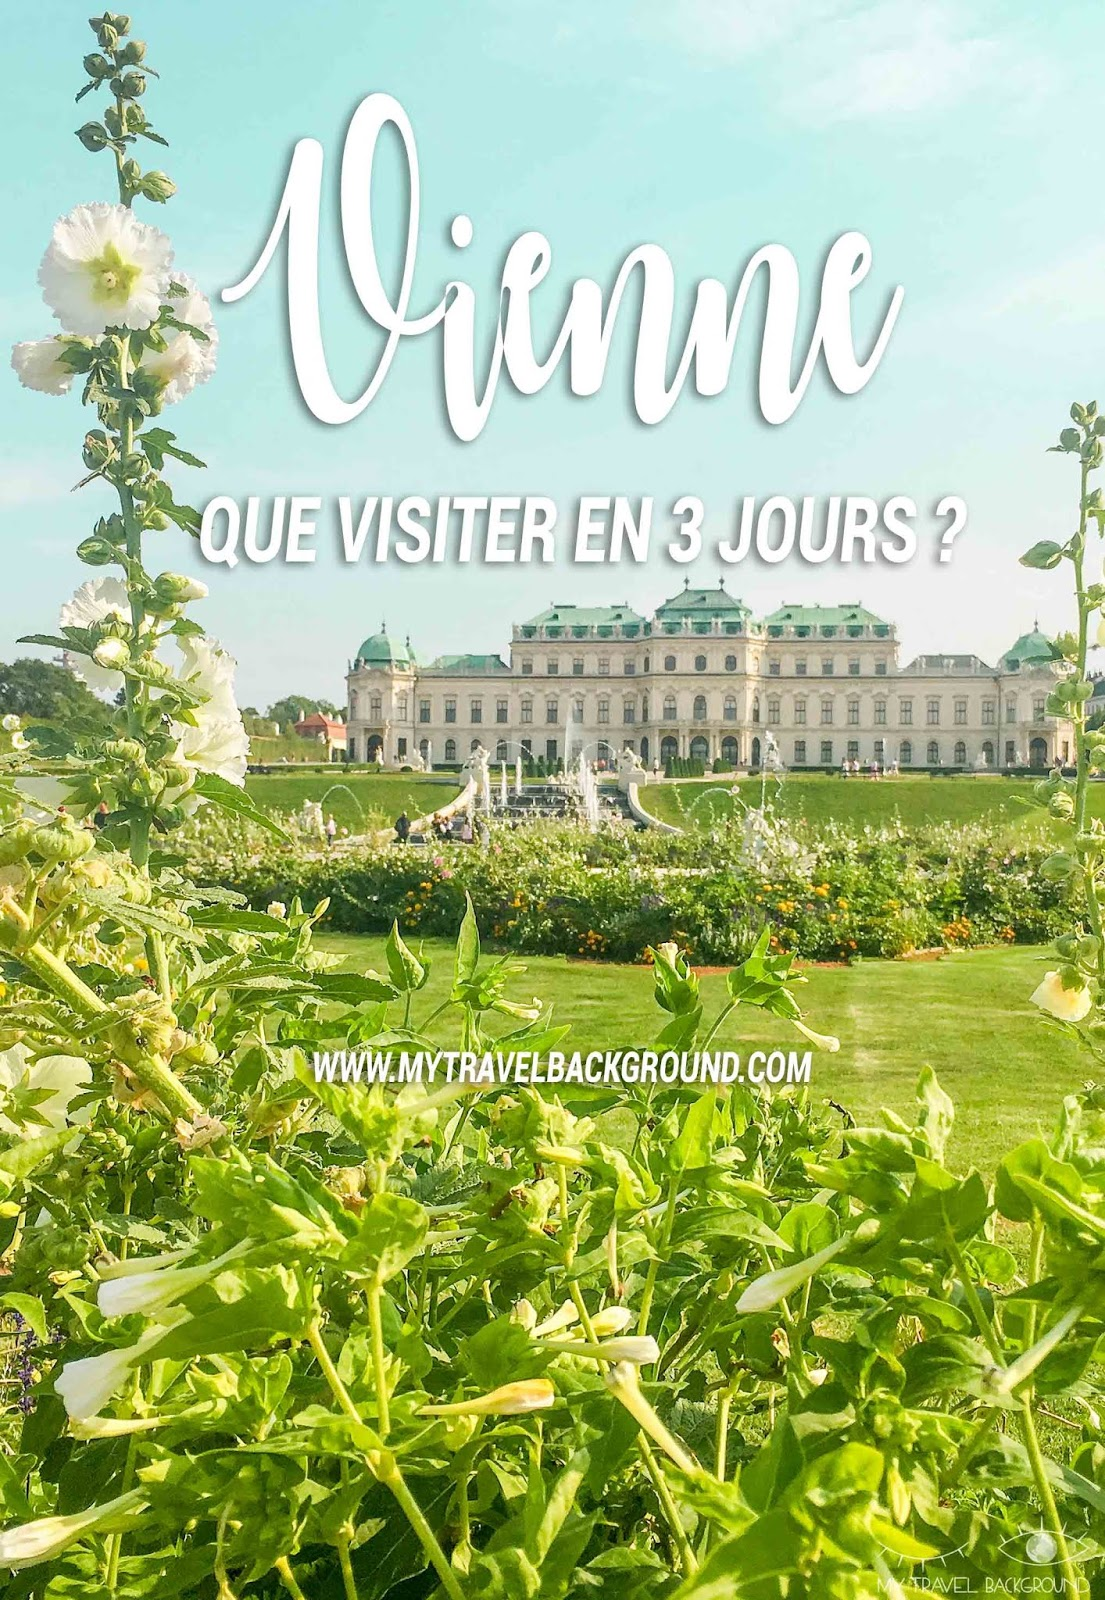 My Travel Background : visiter Vienne, la capitale de l'Autriche, en 3 jours - Palais du Belvédère